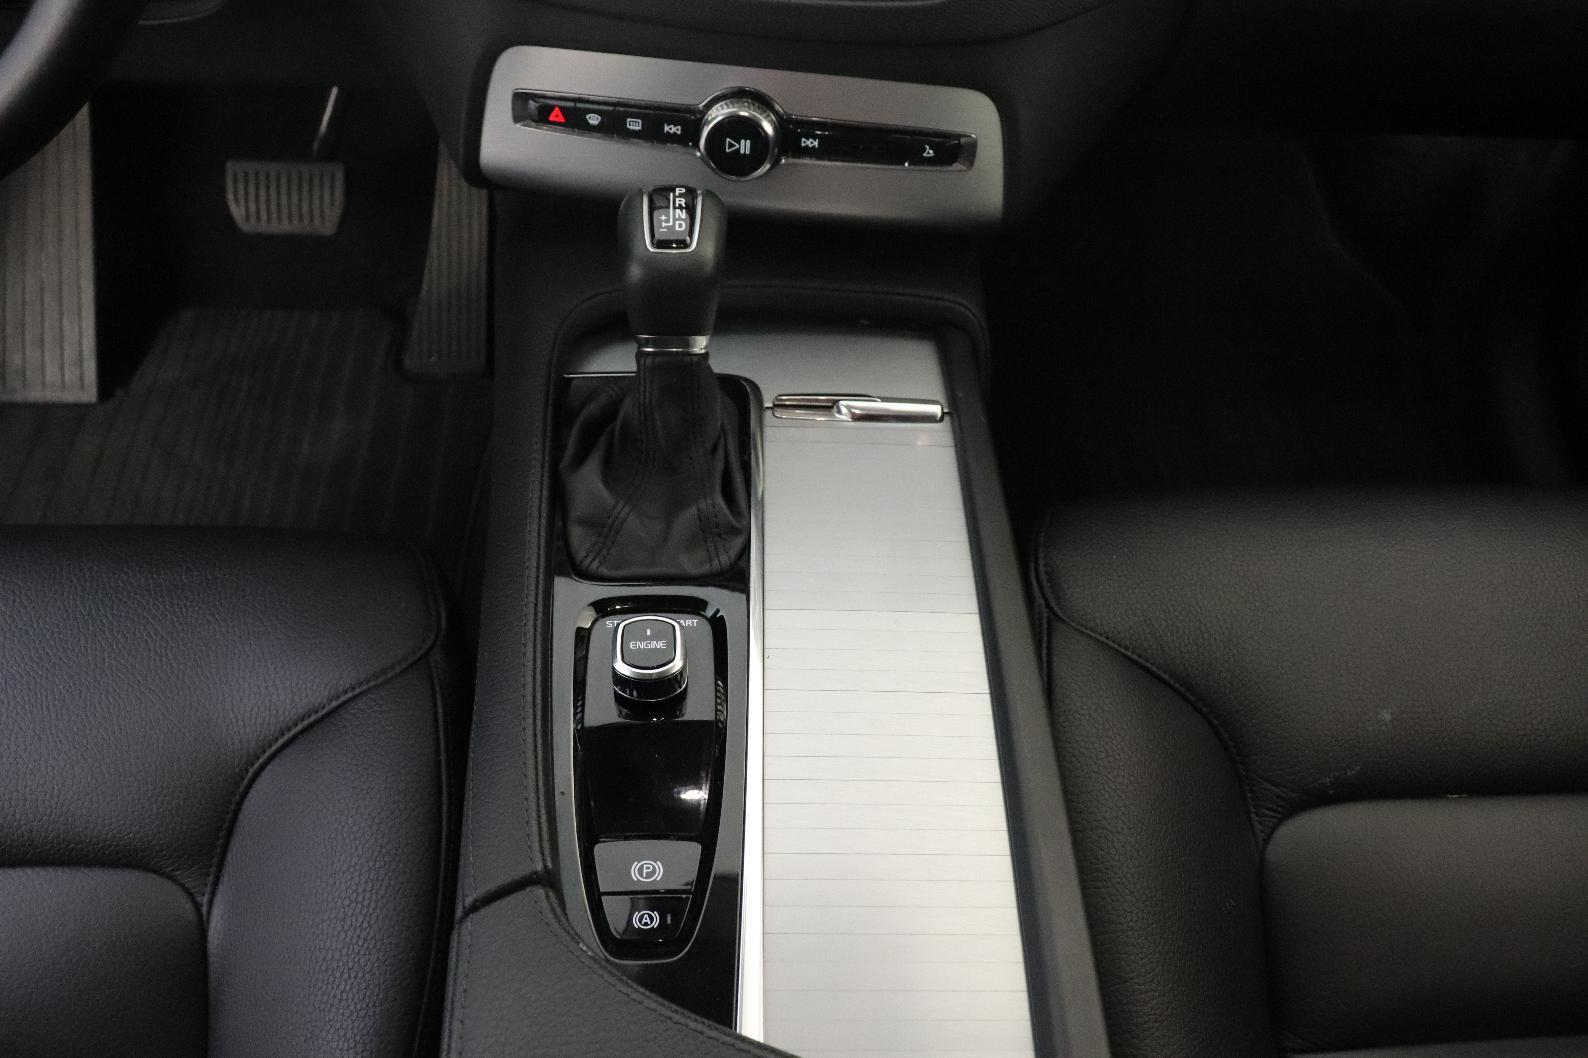 VOLVO XC90 D4 190 ch Geartronic 7pl Momentum